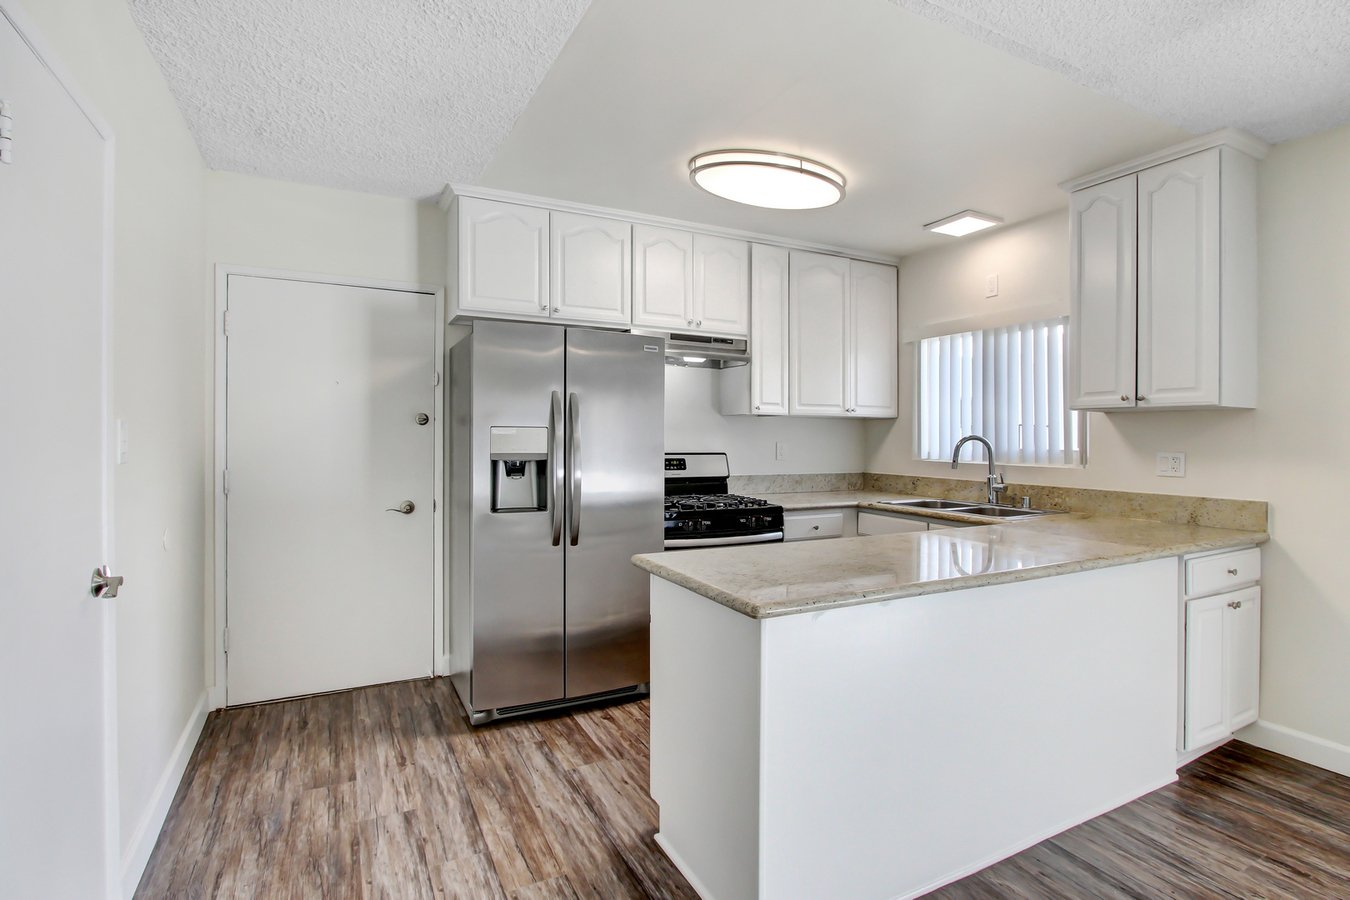 2 Bedrooms 2 Bathrooms Apartment for rent at 303 in Burbank, CA